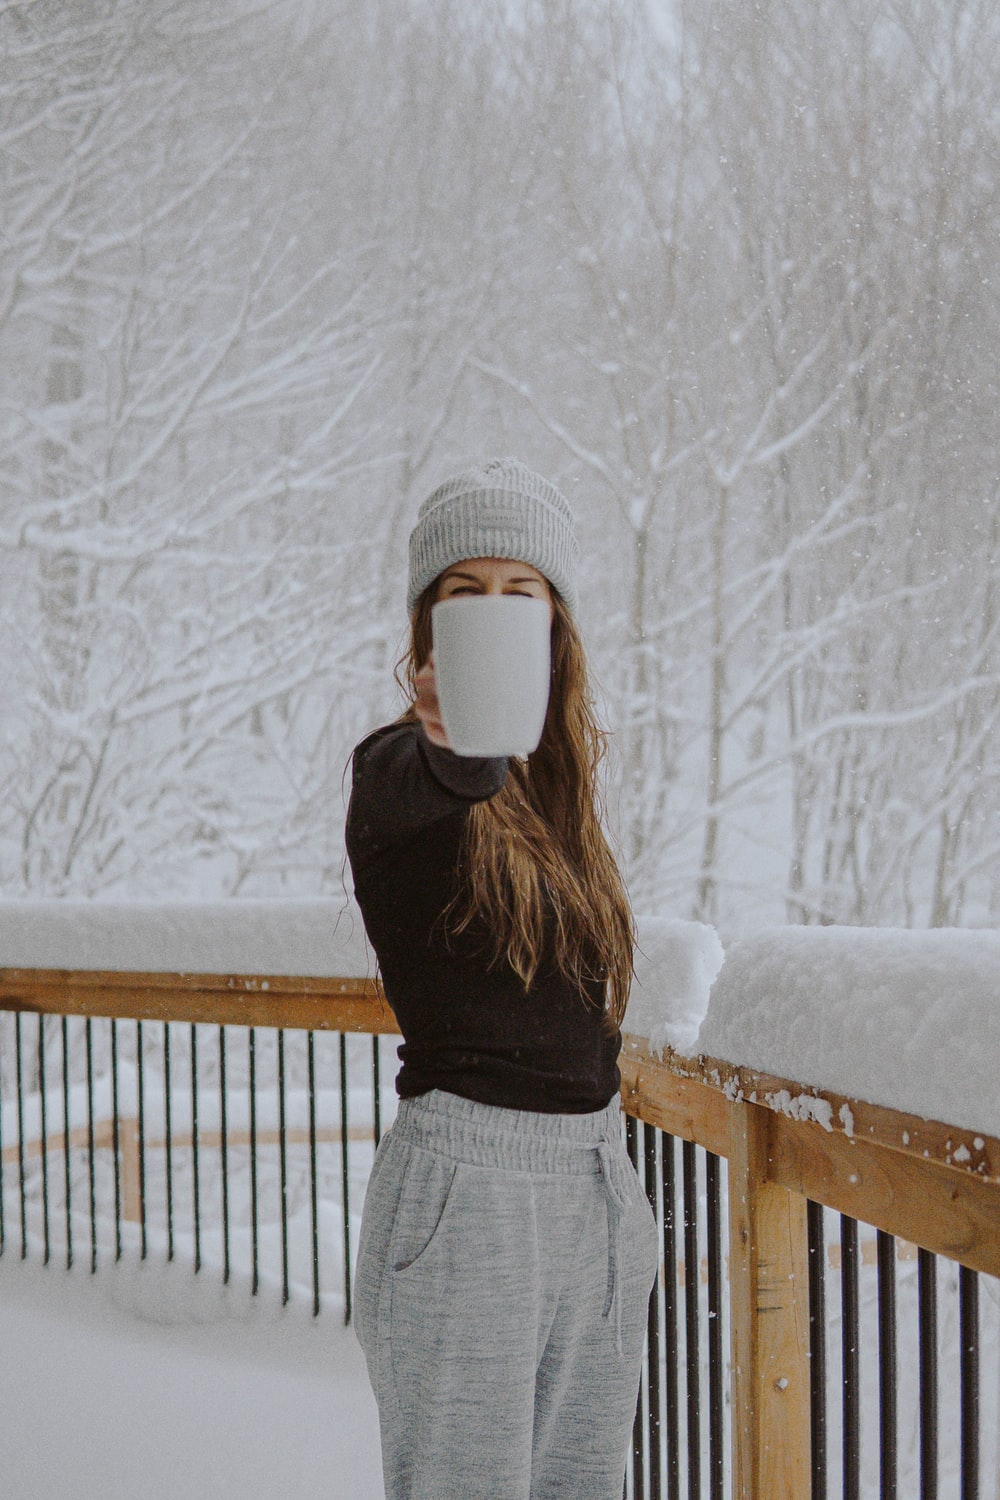 woman in black sweater and gray and white plaid skirt standing on snow covered ground during